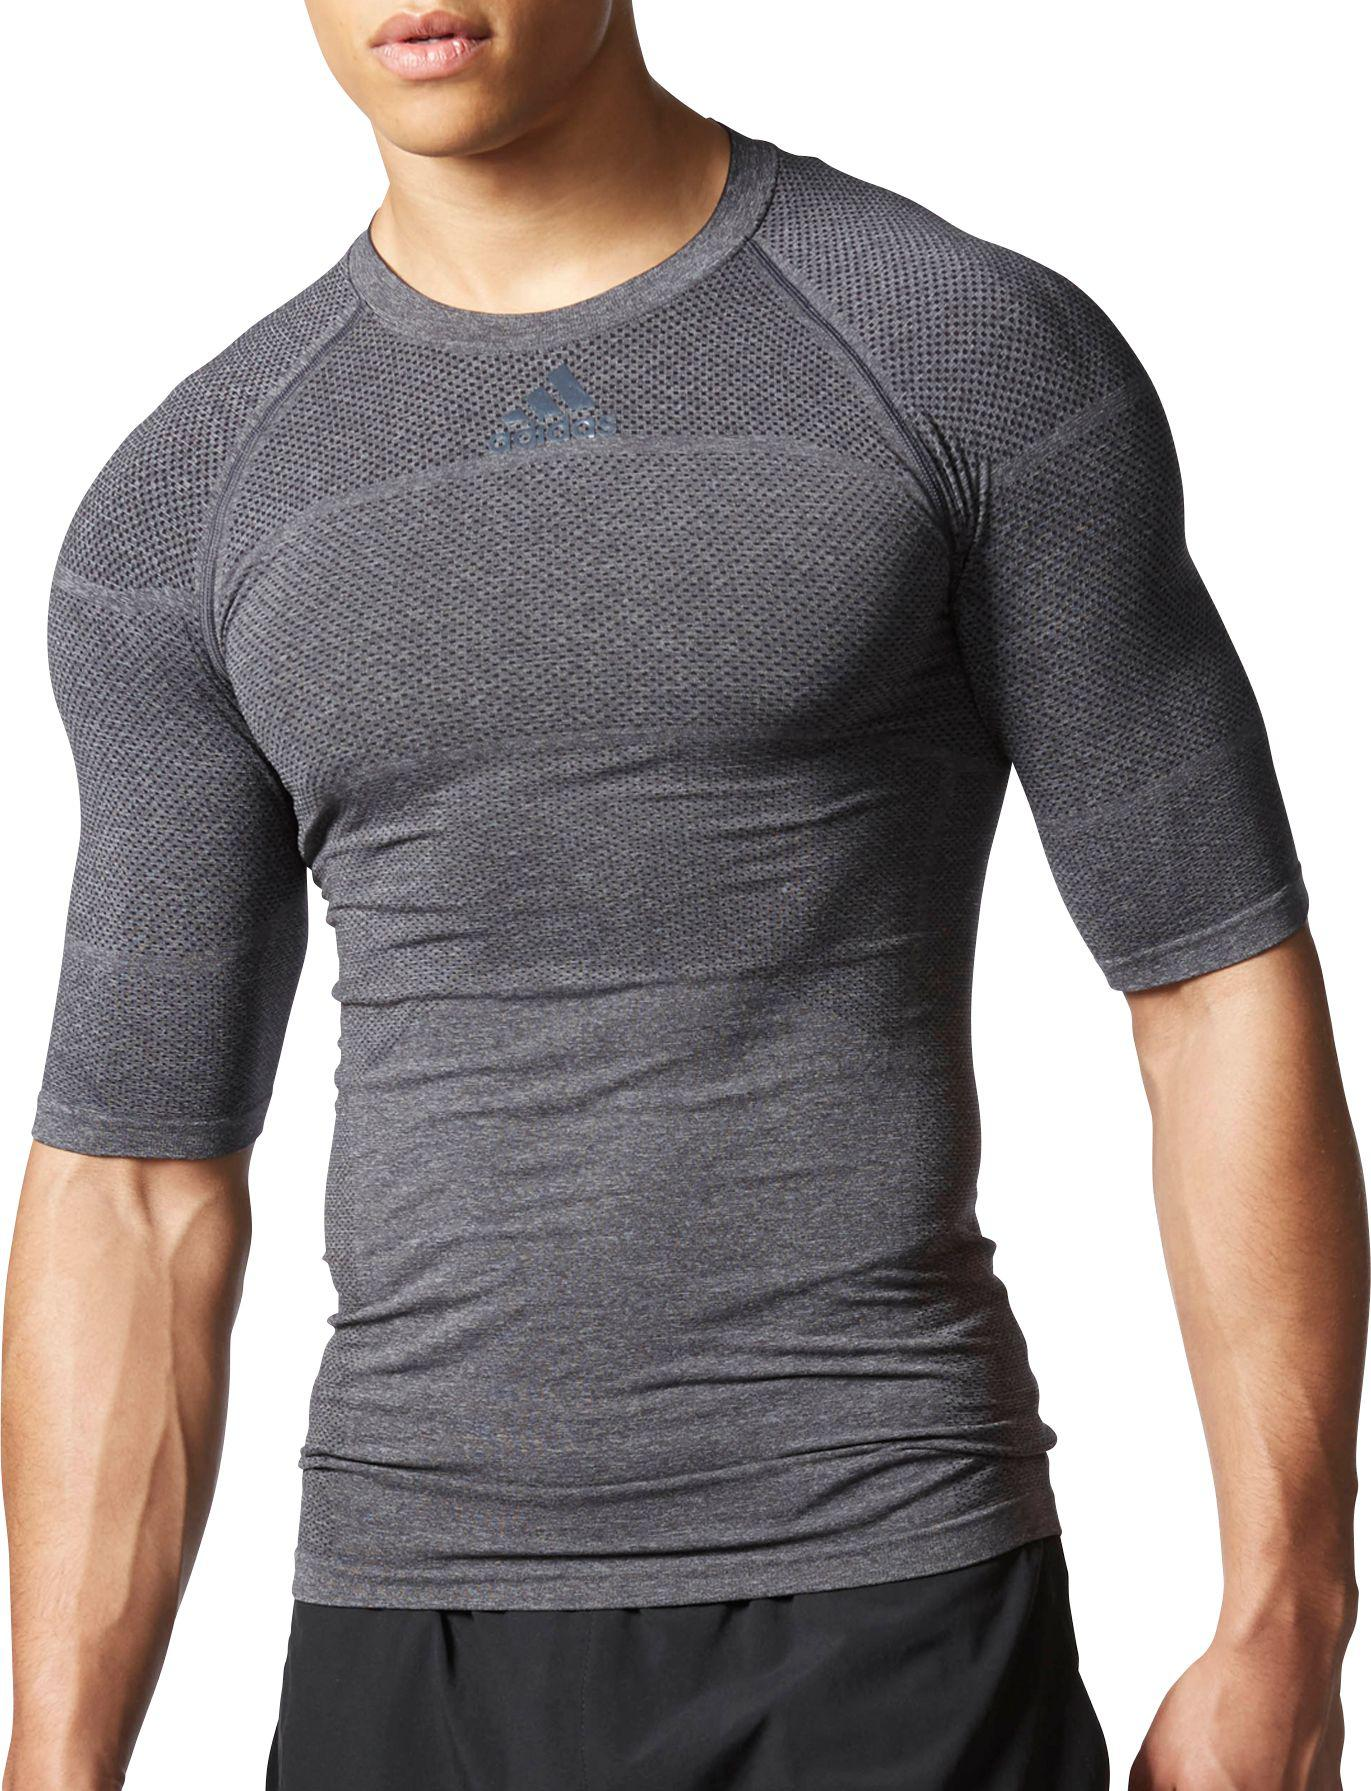 adidas compression t shirt